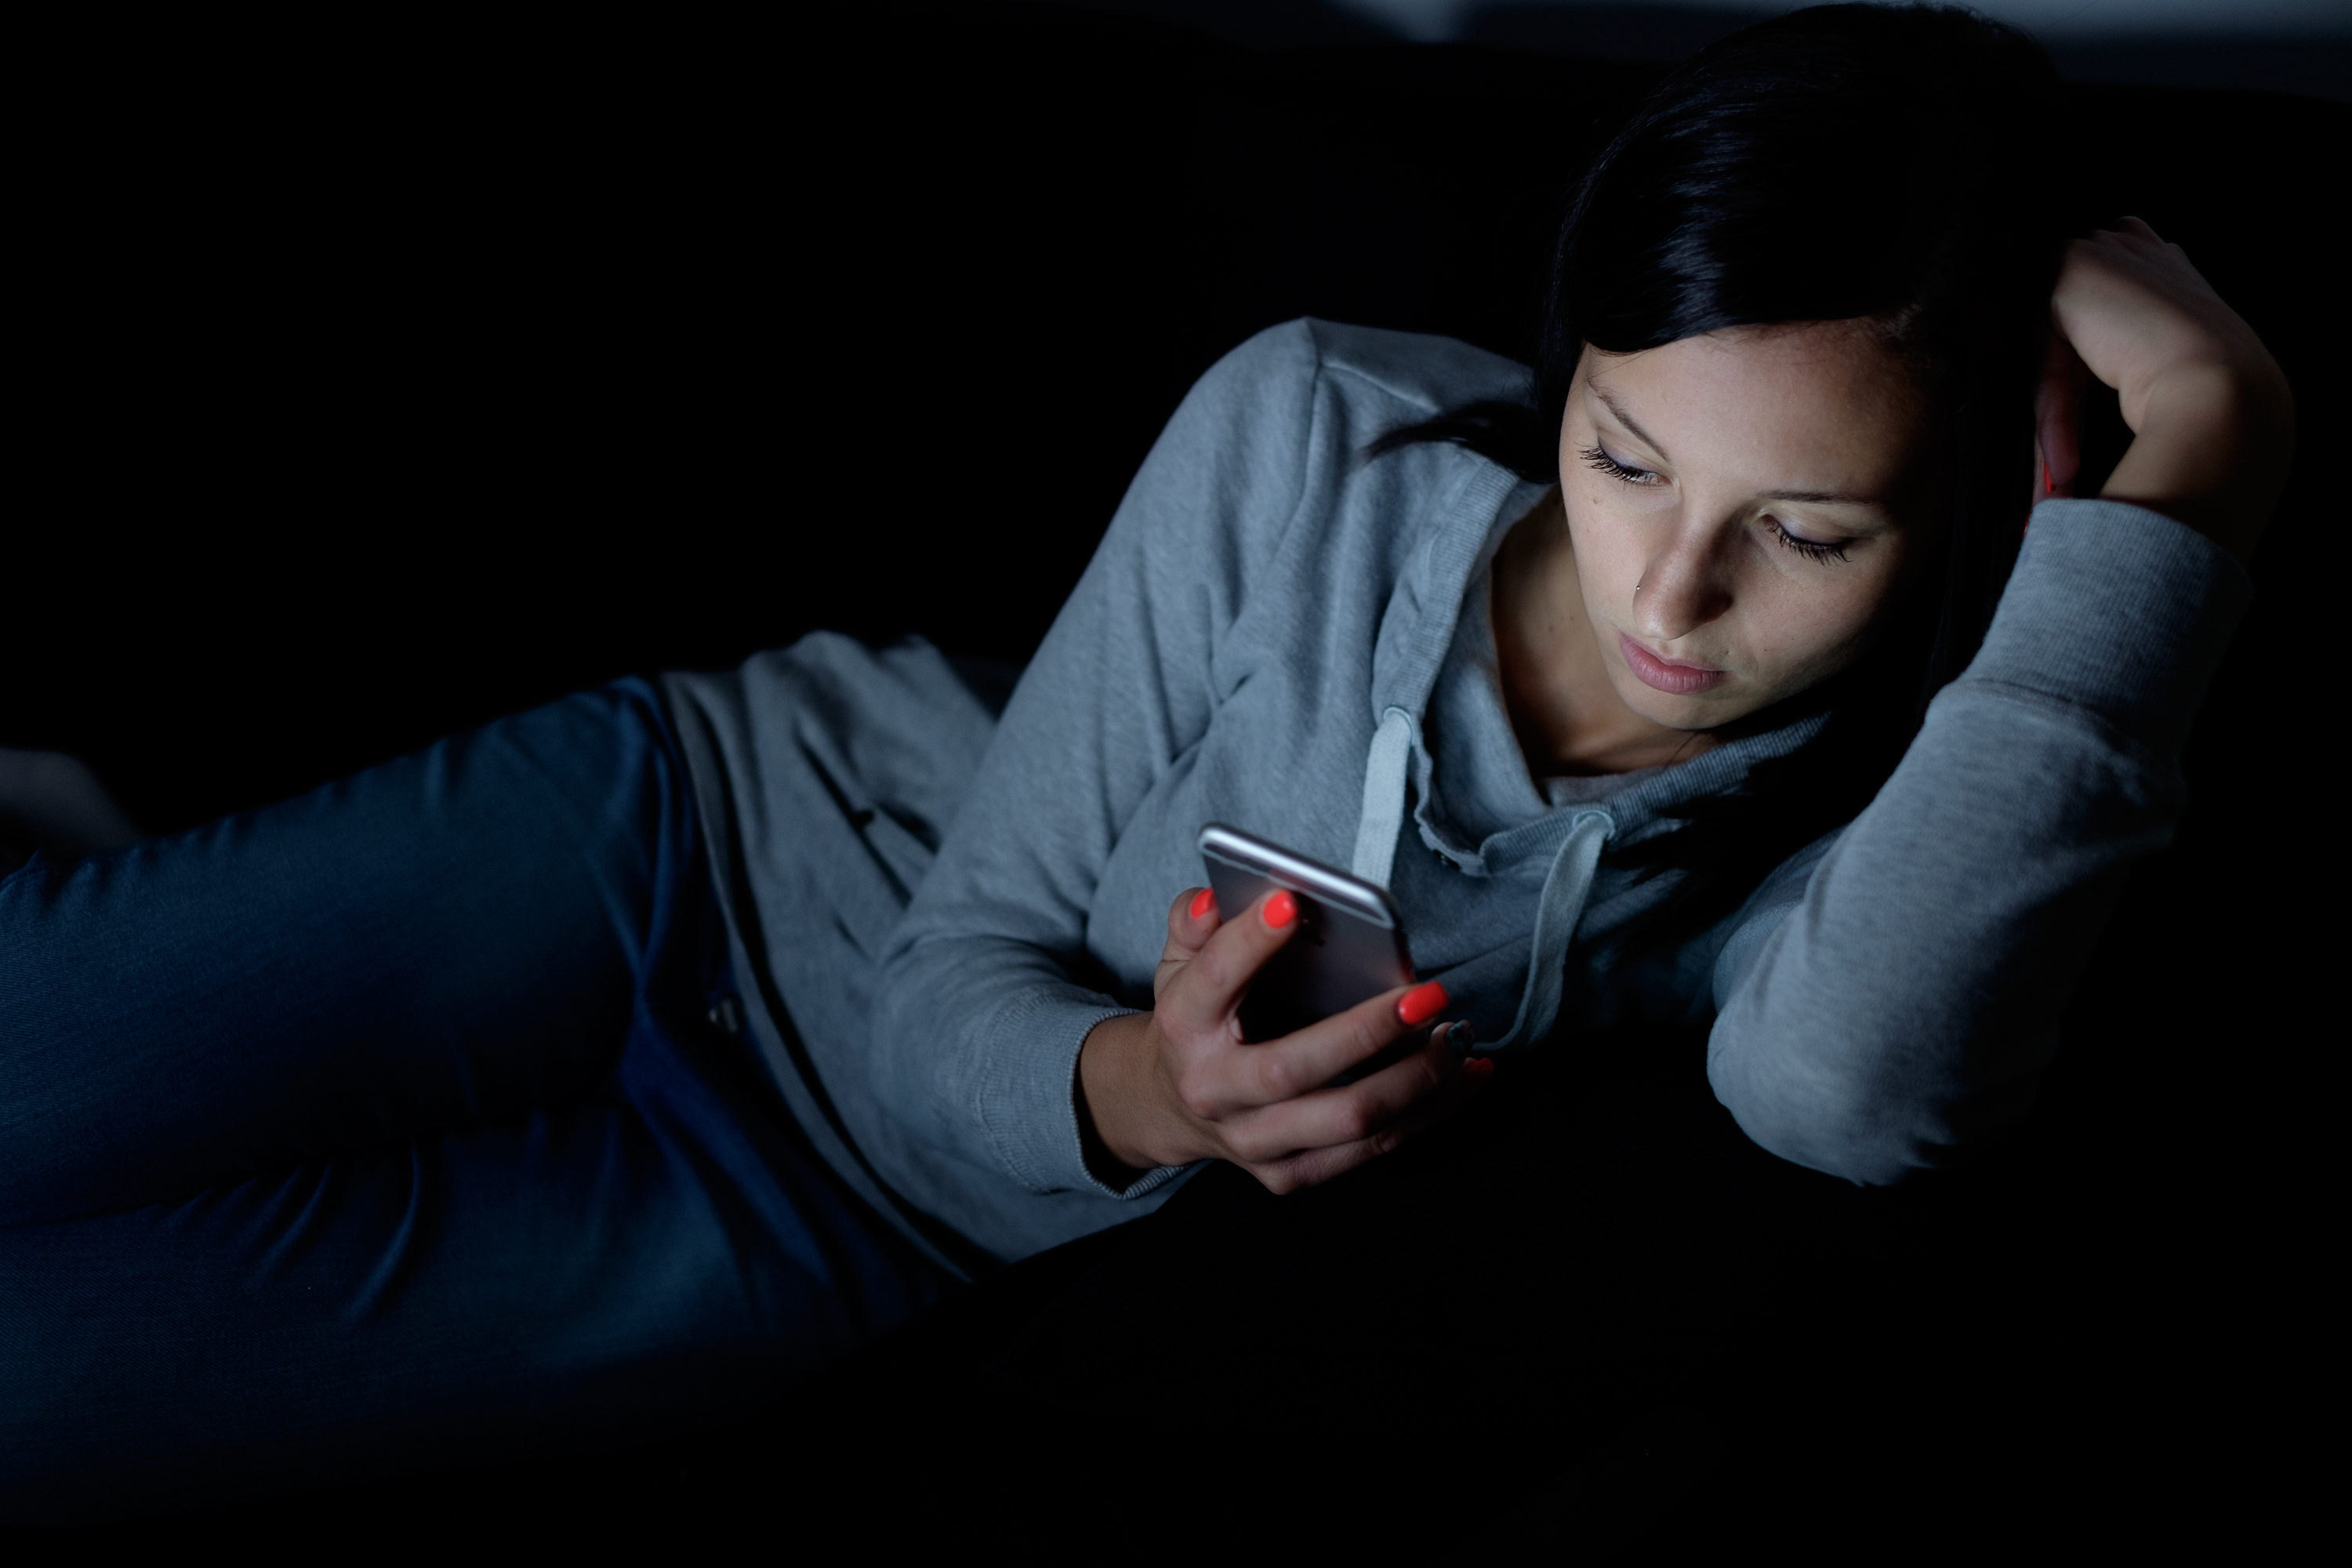 Murdoch and Griffiths Uni study finds teens' latenight phone usage putting mental health at risk